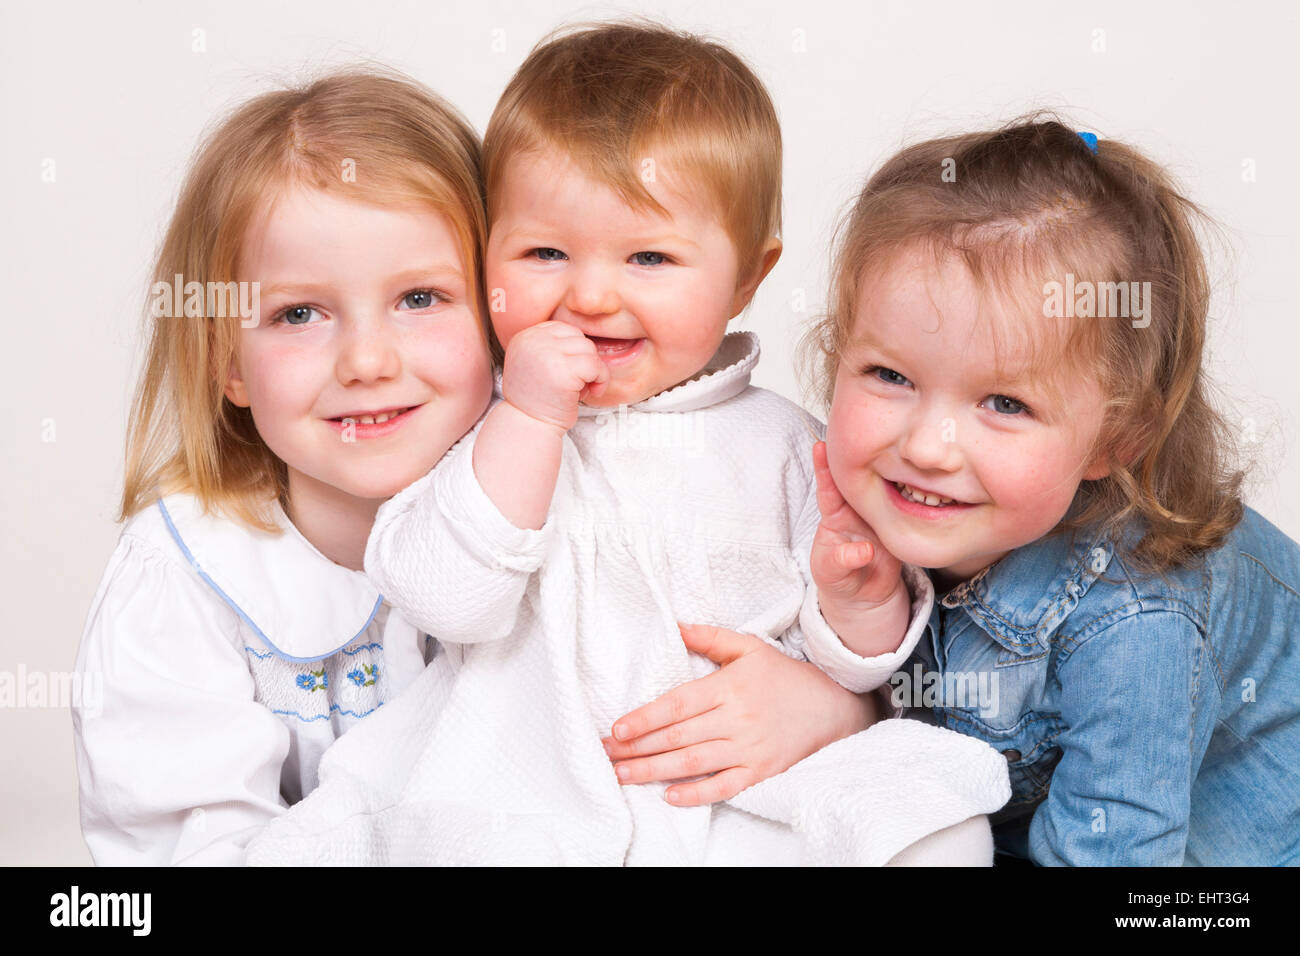 family-group-portrait-of-3-three-young-c